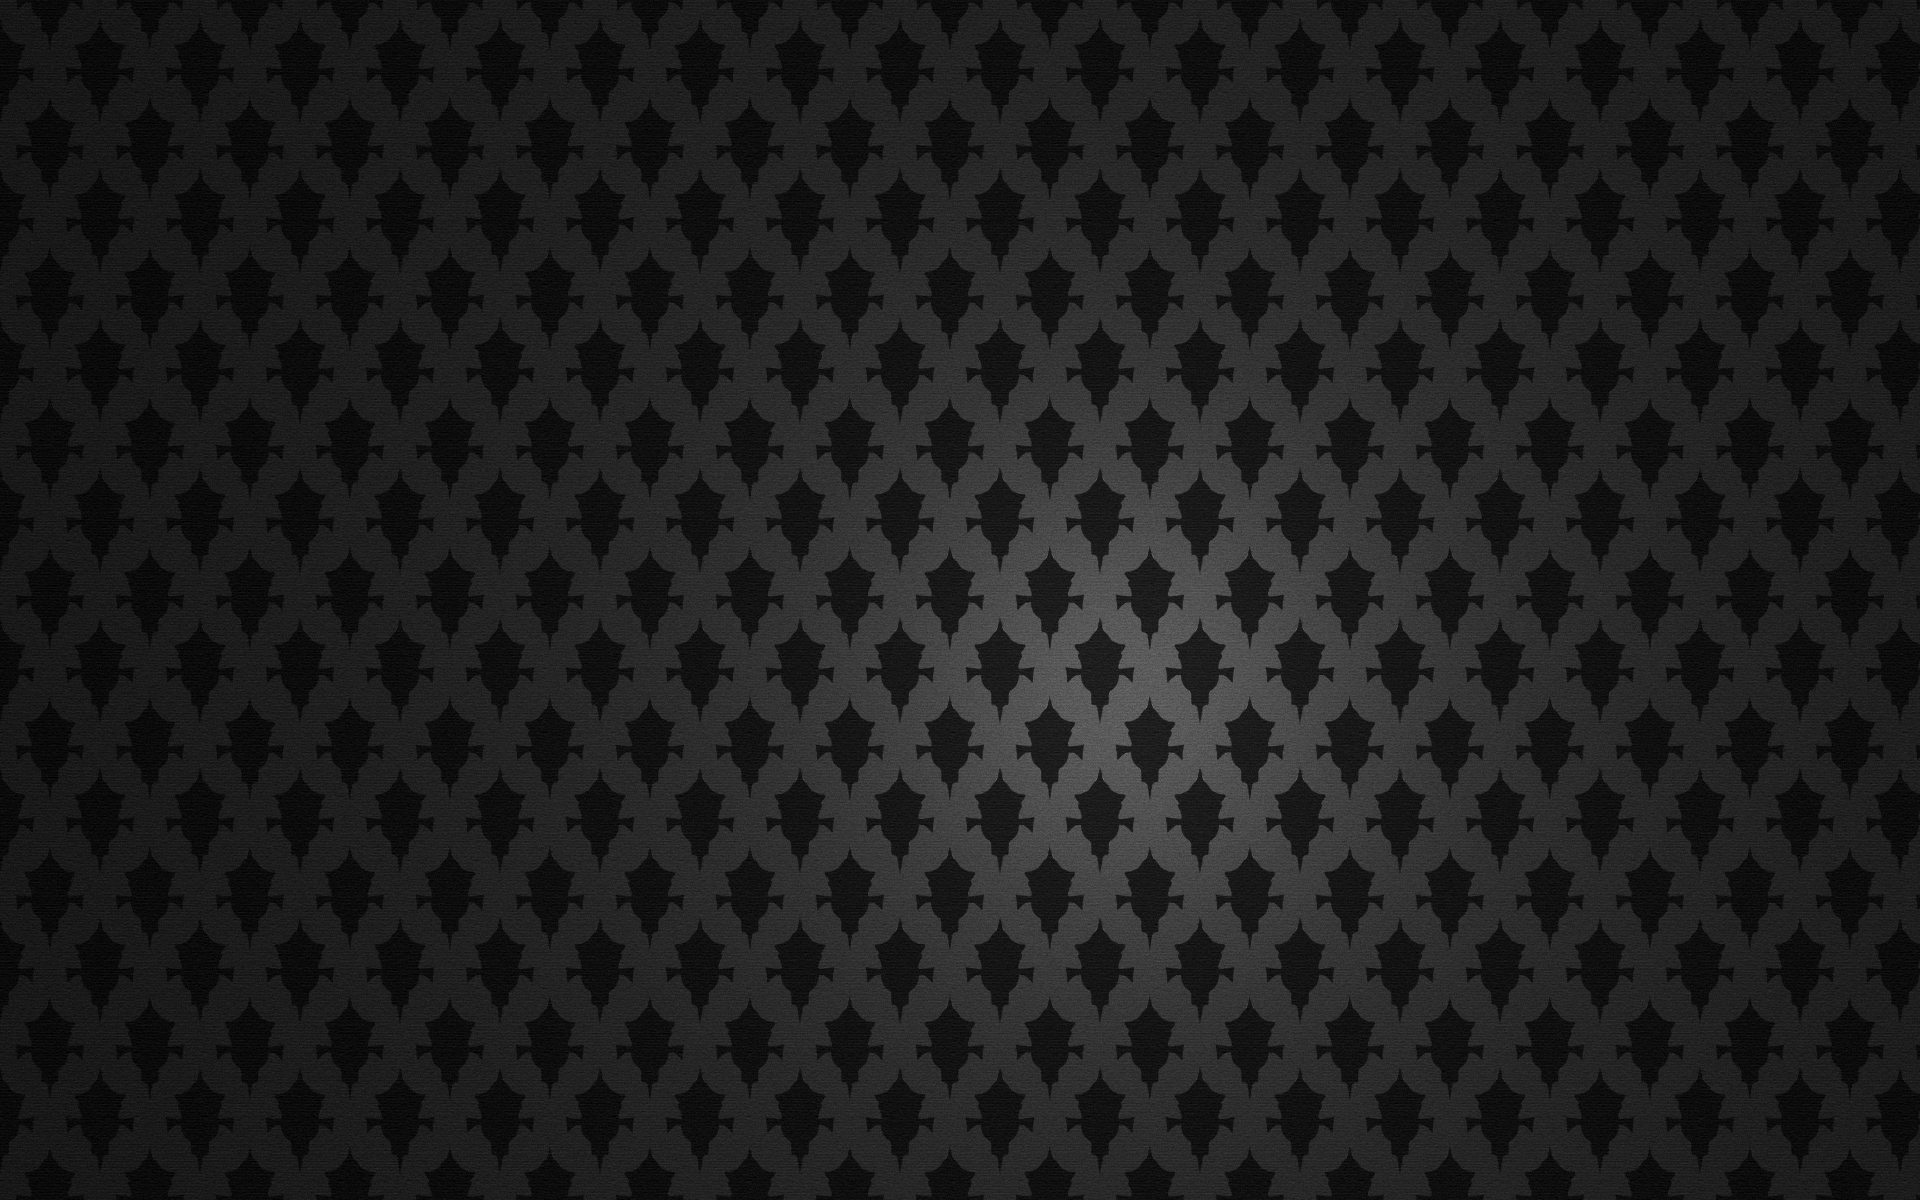 Black Textured Wallpaper